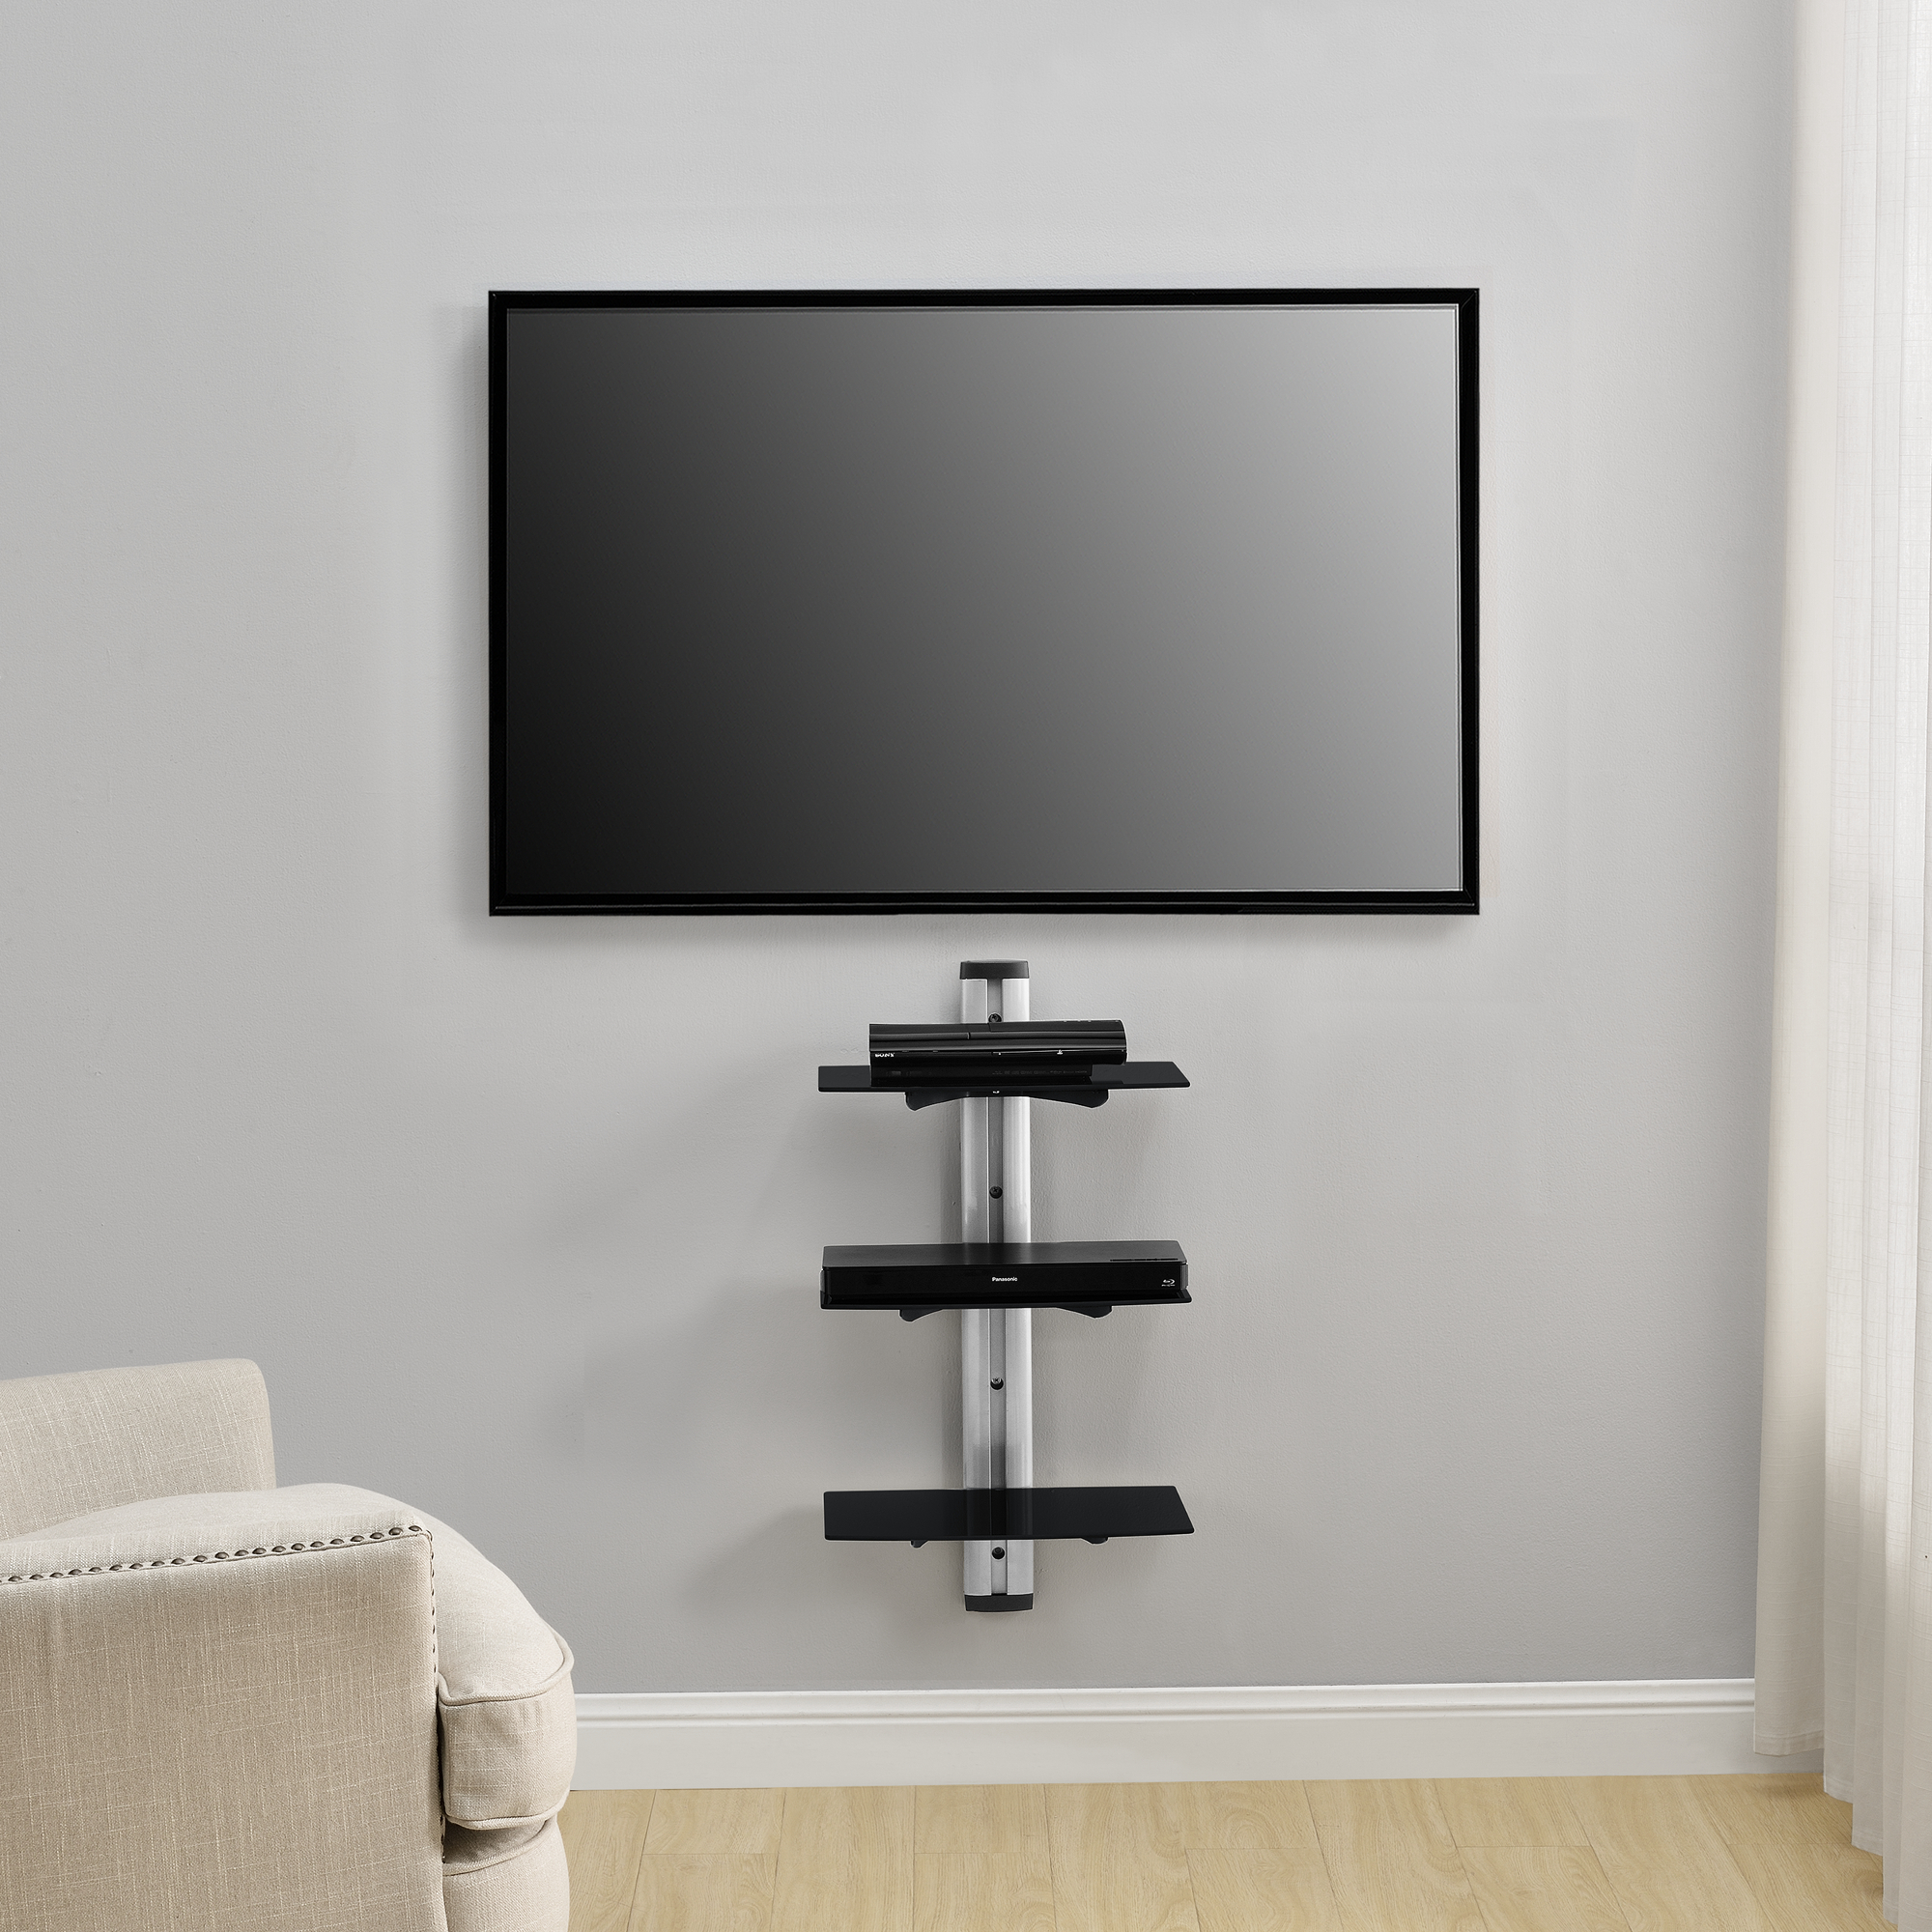 dvd hifi glas regal wandhalterung wandhalter receiver glasregal wand ebay. Black Bedroom Furniture Sets. Home Design Ideas